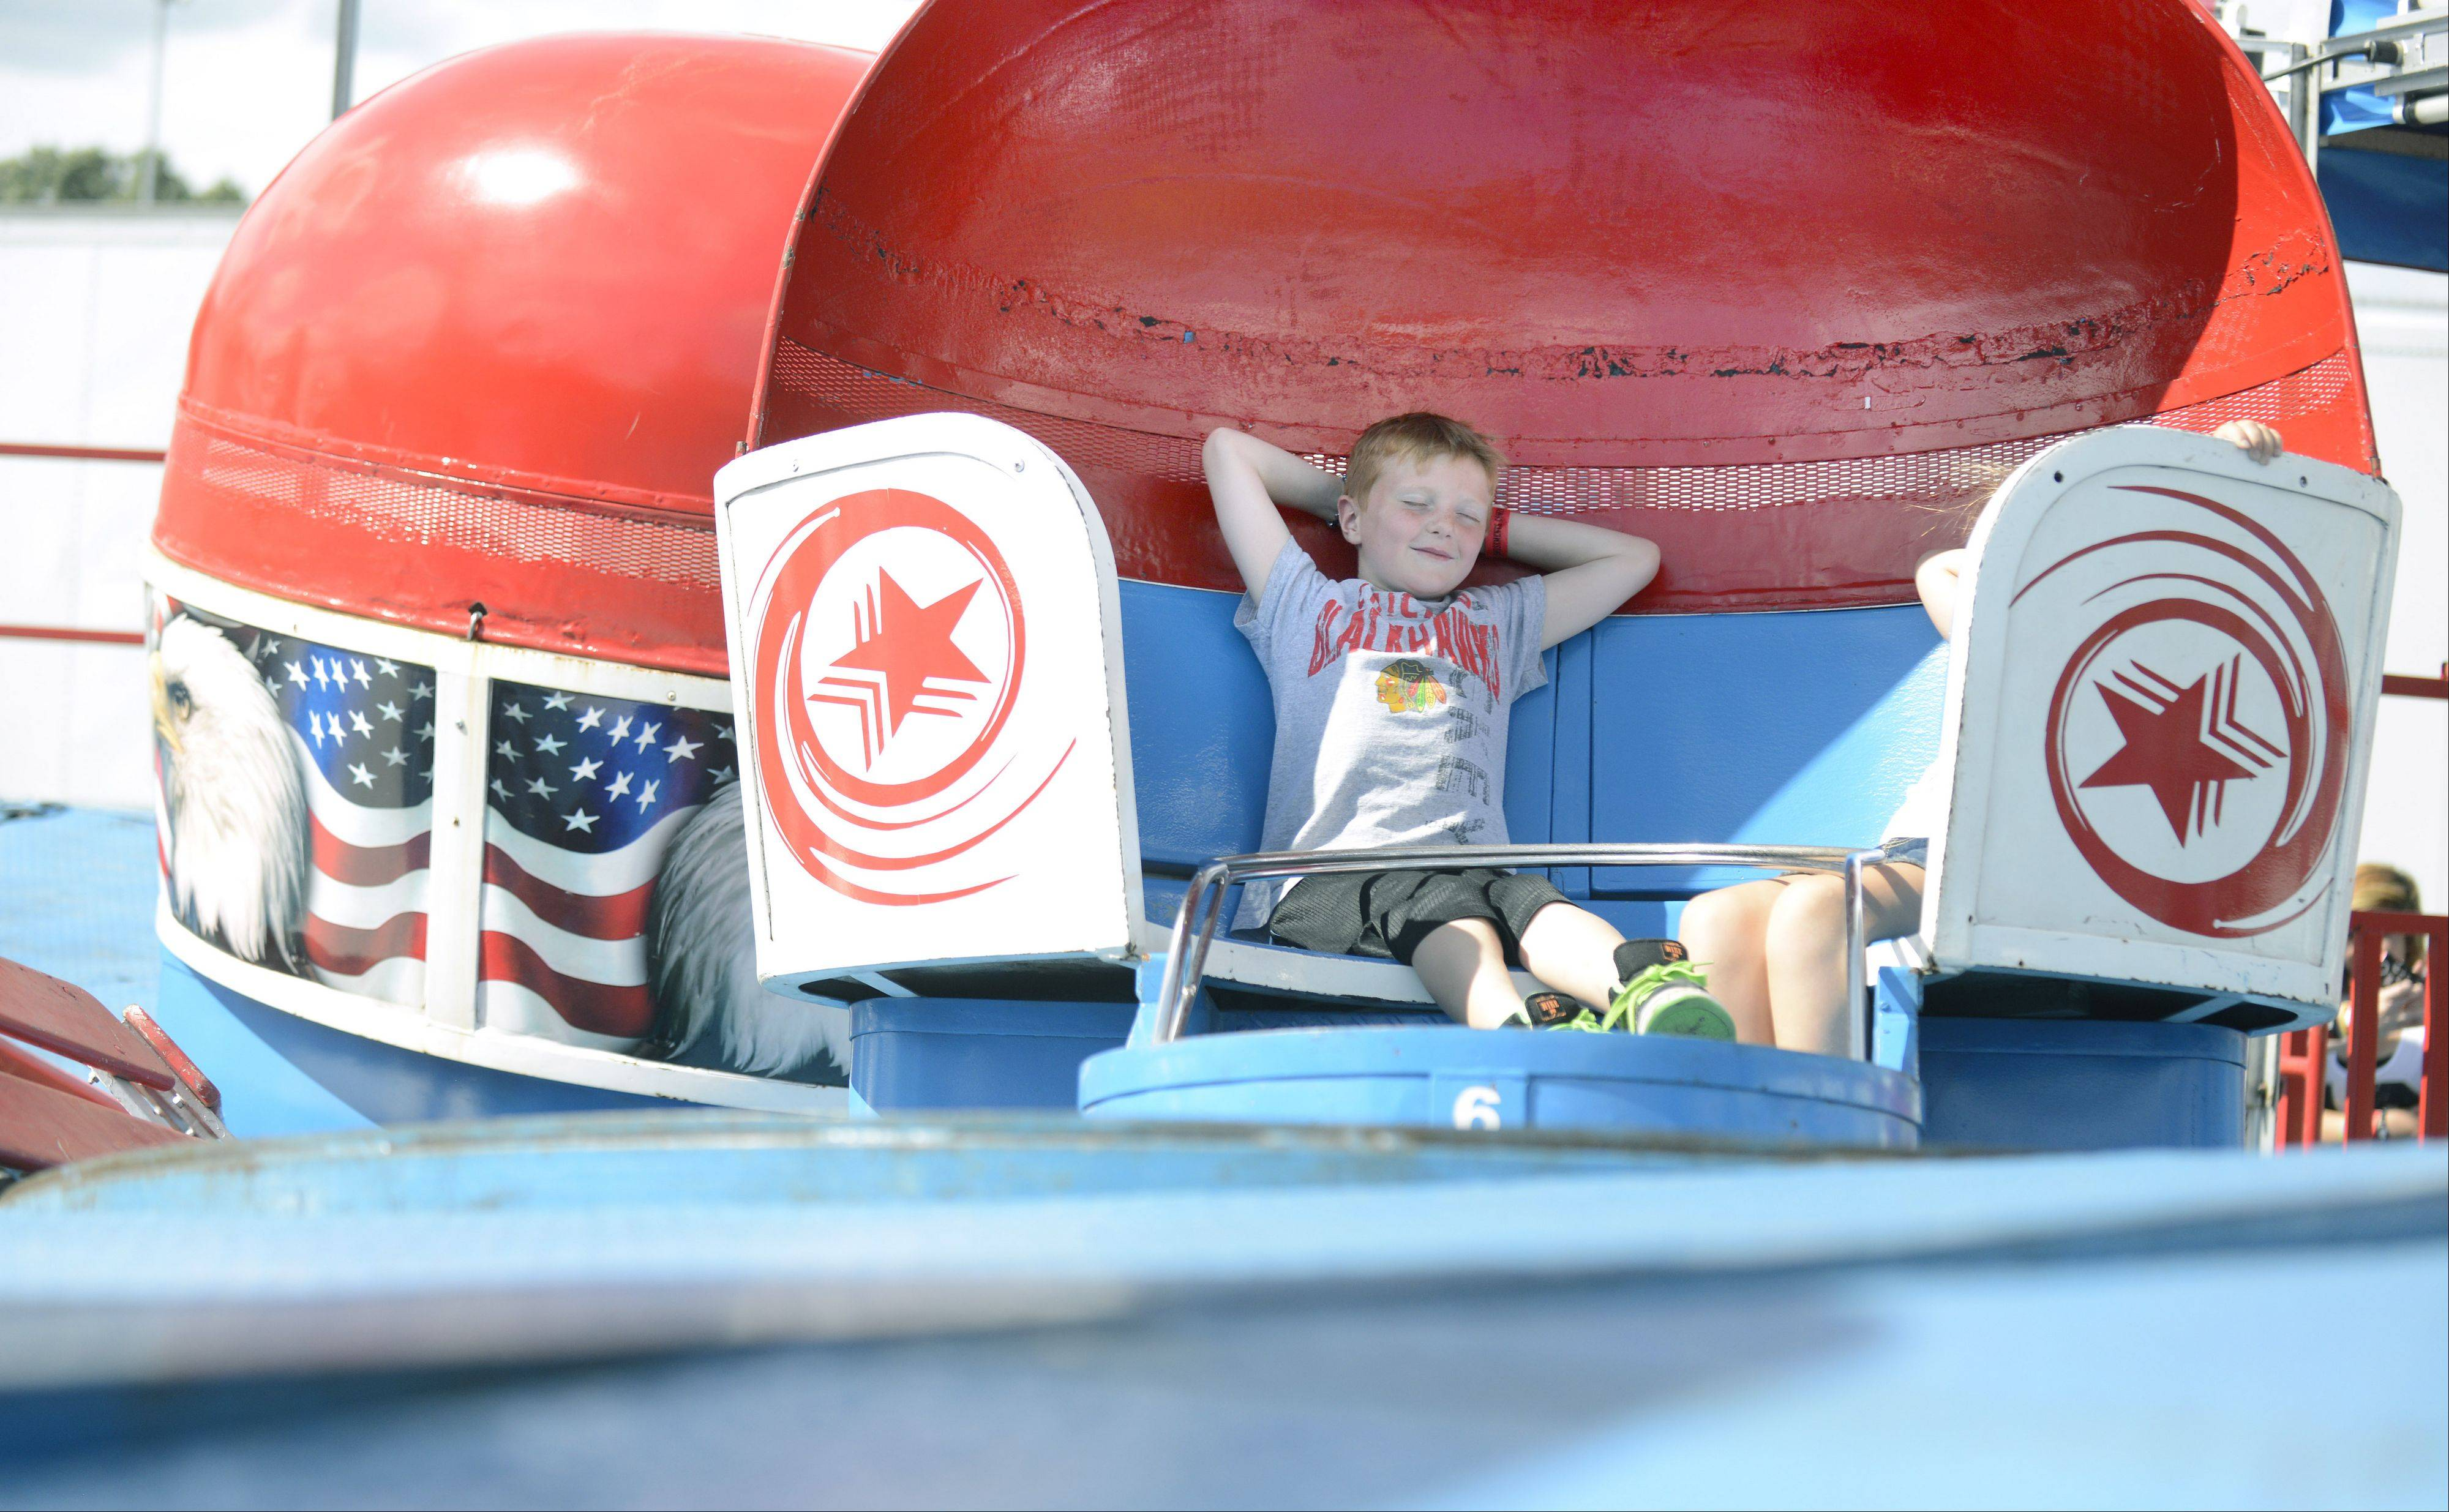 Connor Harvey reclines while spinning on the Tilt-a-Whirl ride with Lily Engelhardt, both 7 and from Hampshire, at Hampshire's Coon Creek Days on Saturday, August 3. Connor comes to Coon Creek Days every year.